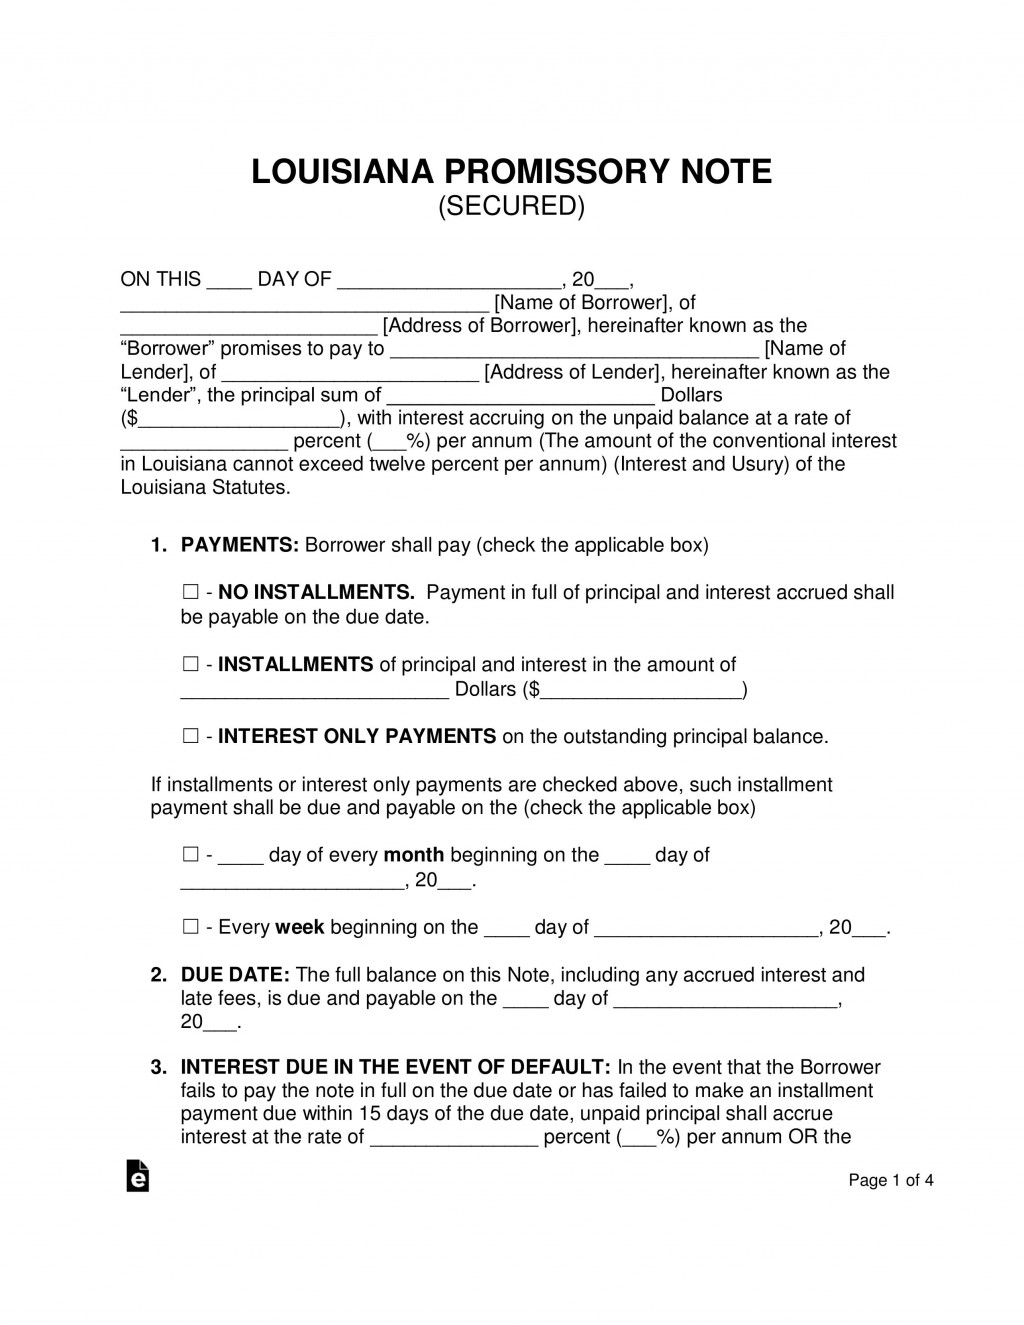 002 Wonderful Loan Promissory Note Template High Resolution  Ppp Form Personal Format StudentLarge